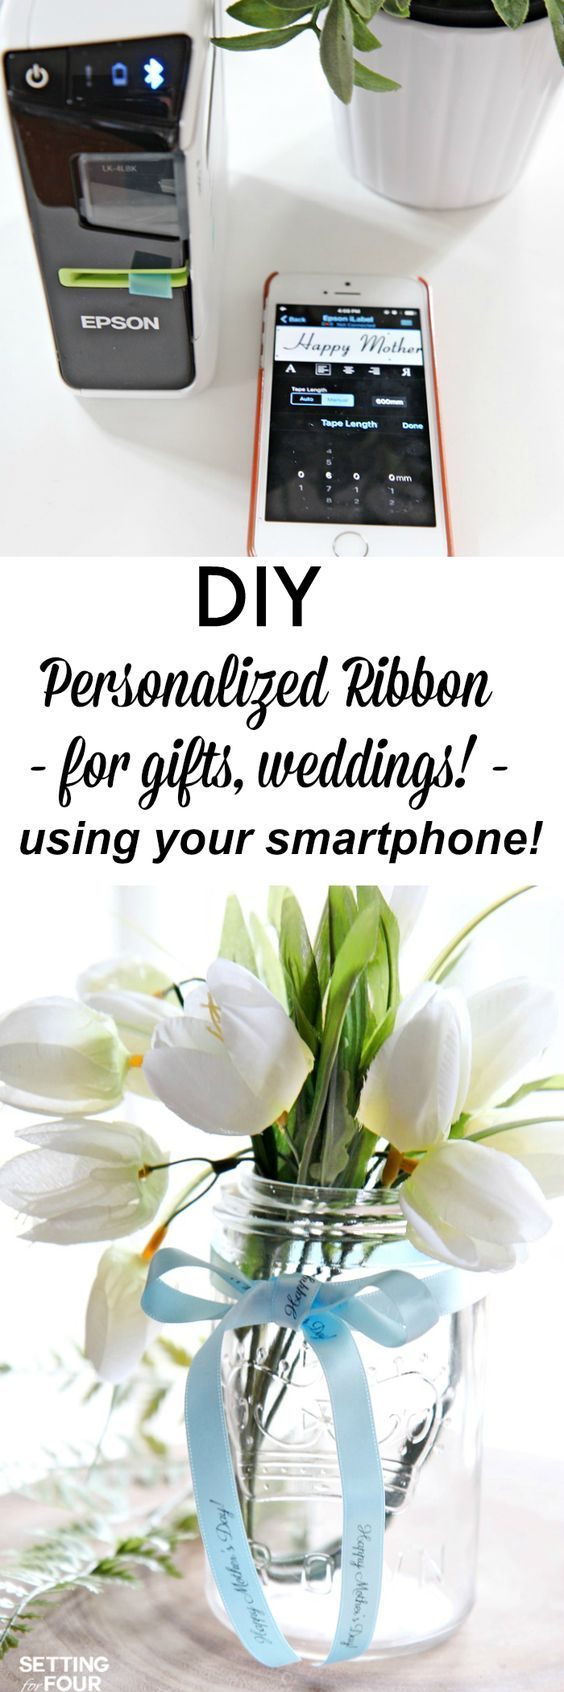 Wedding Gift Ideas Quick : ... on Pinterest Mother Day Gifts, Mothers Day and Mothers Day Crafts